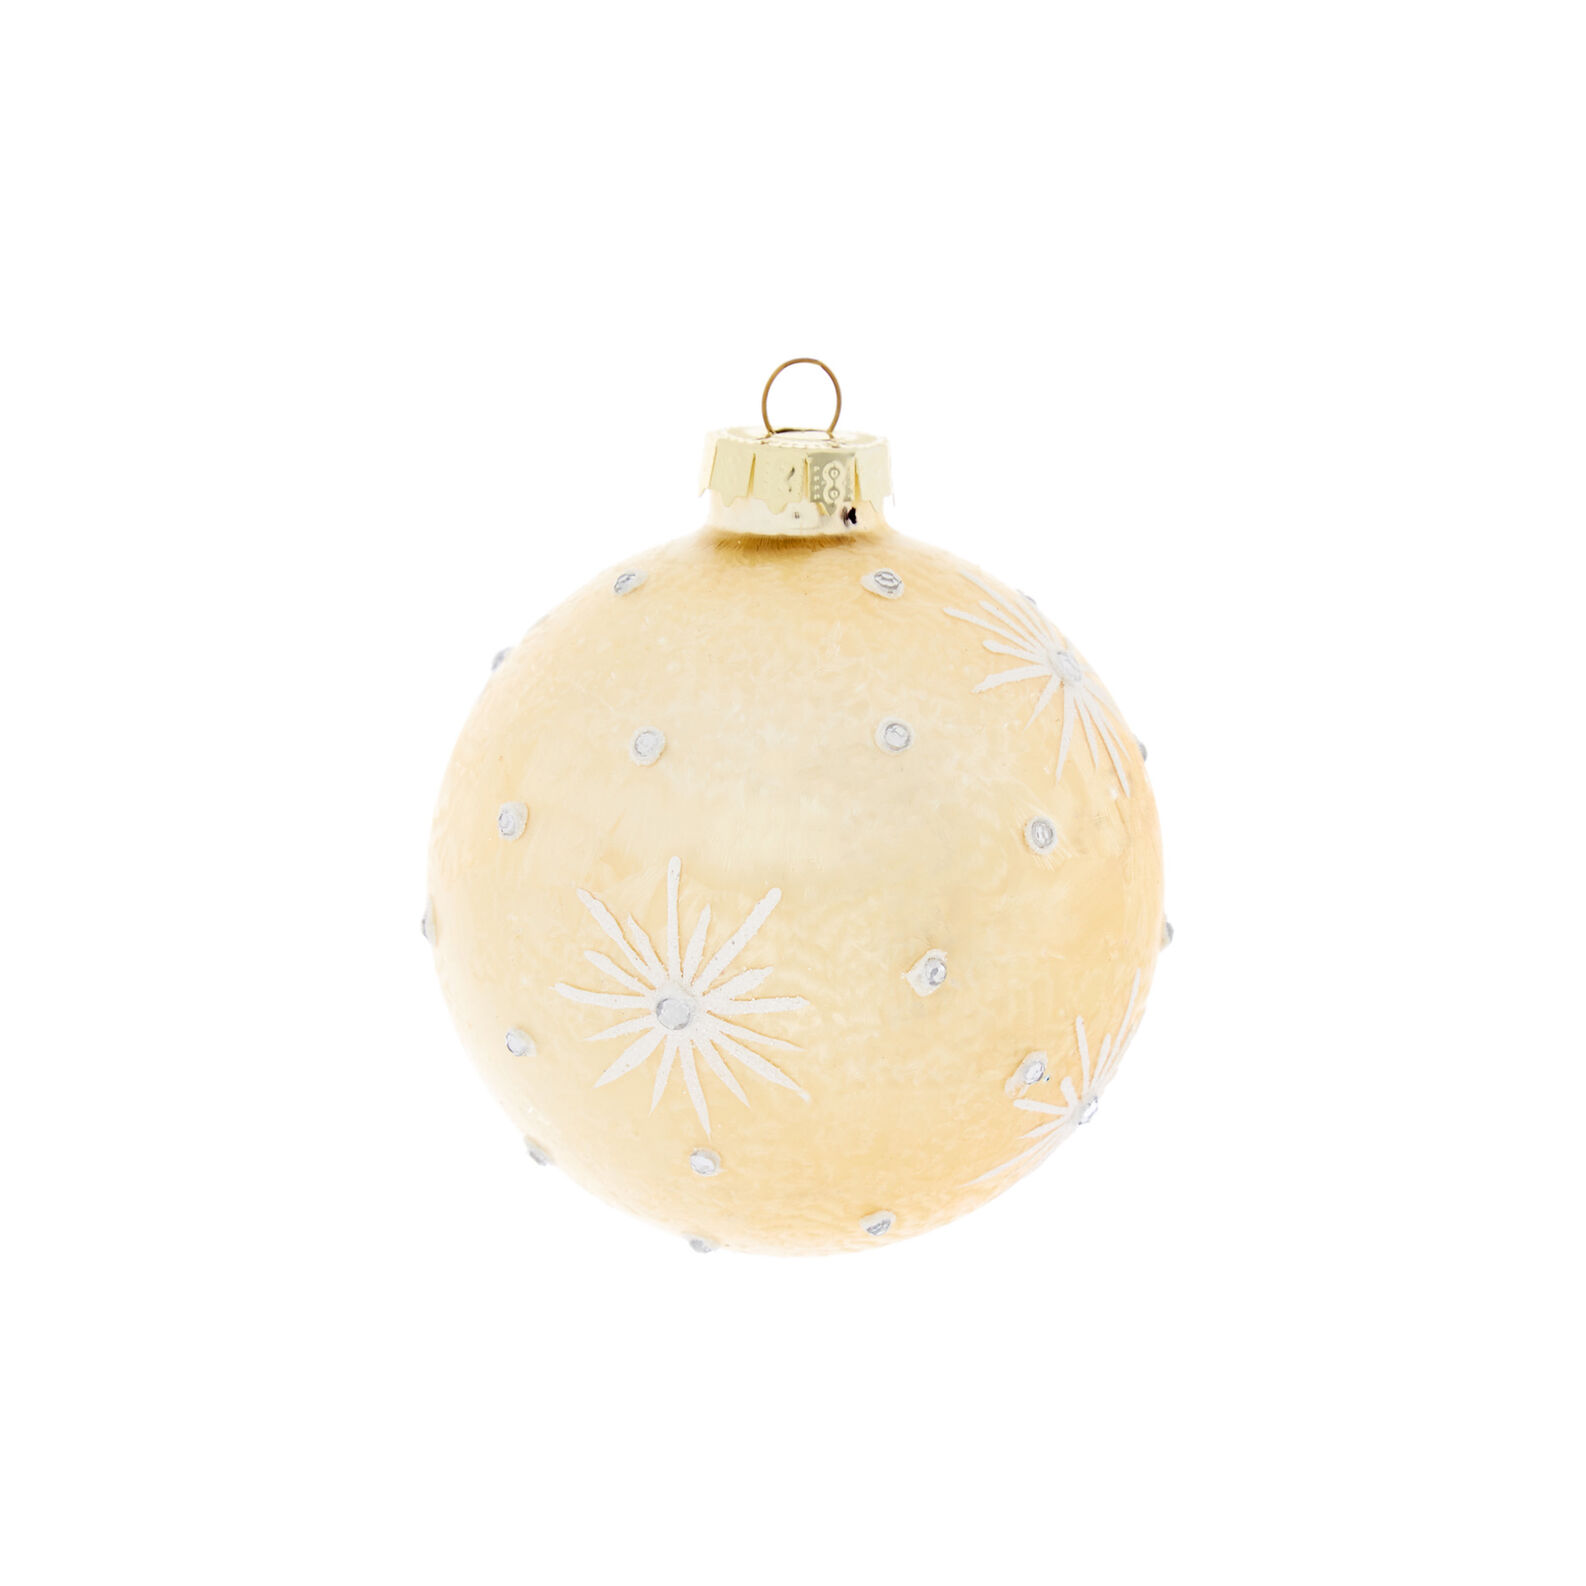 Hand-decorated glass bauble